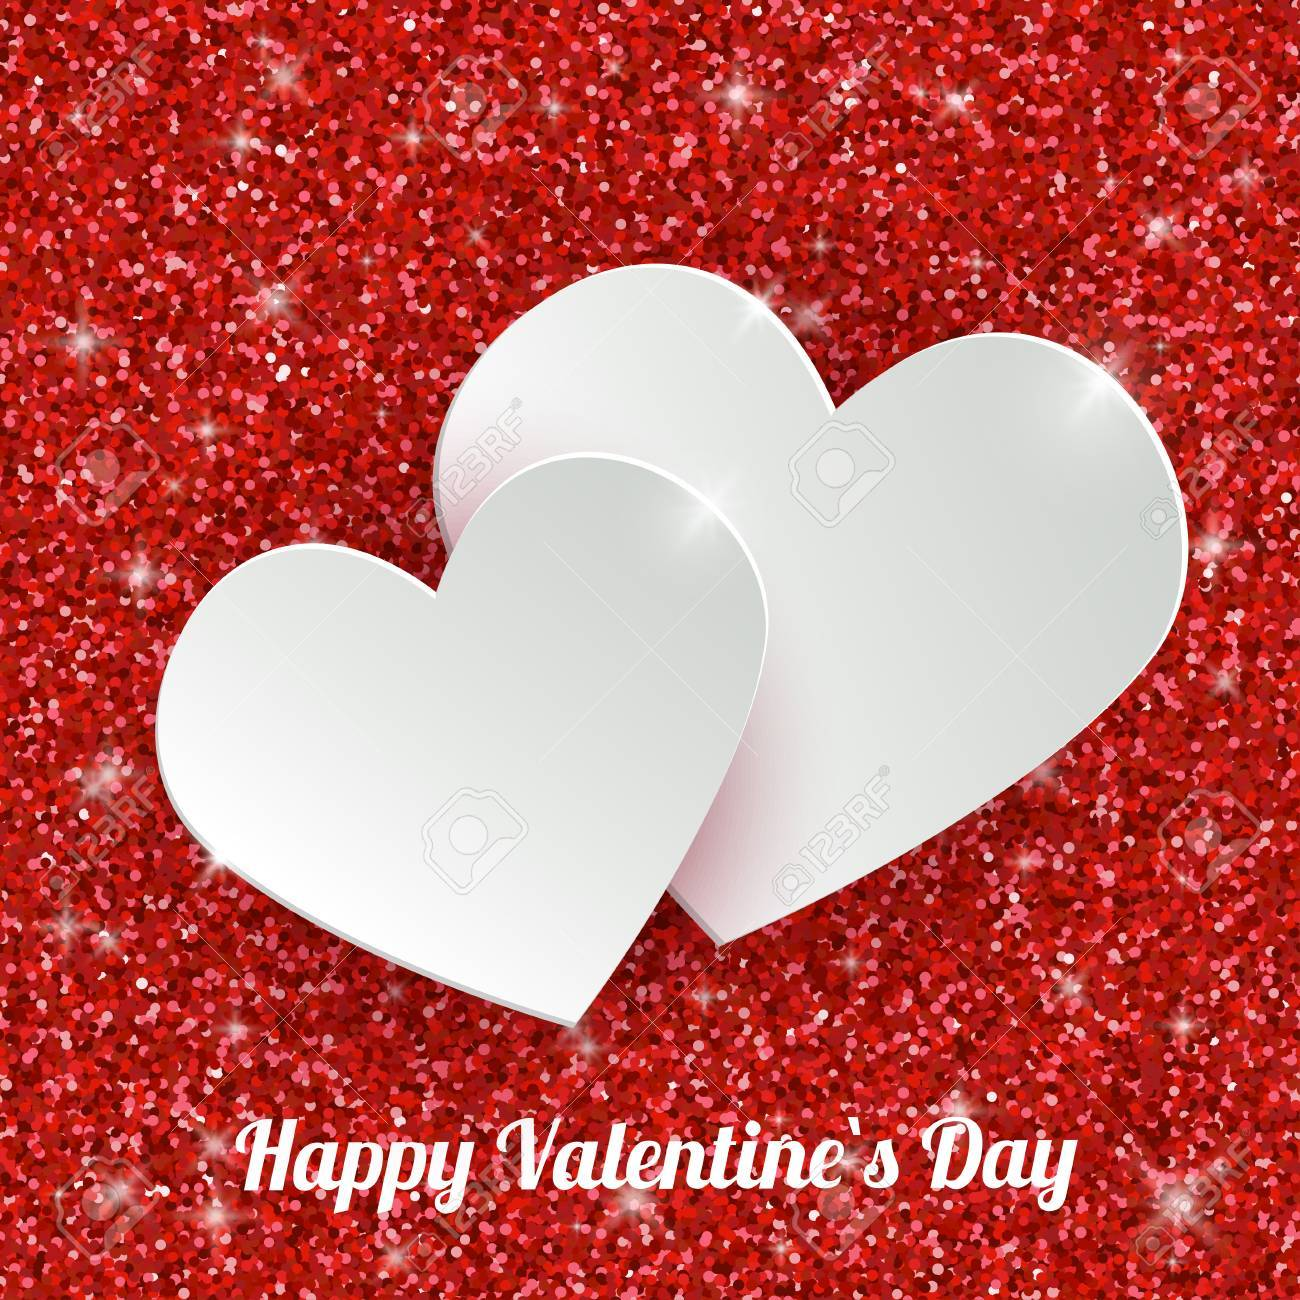 Happy Valentines Day Greeting Card With 3d White Paper Hearts